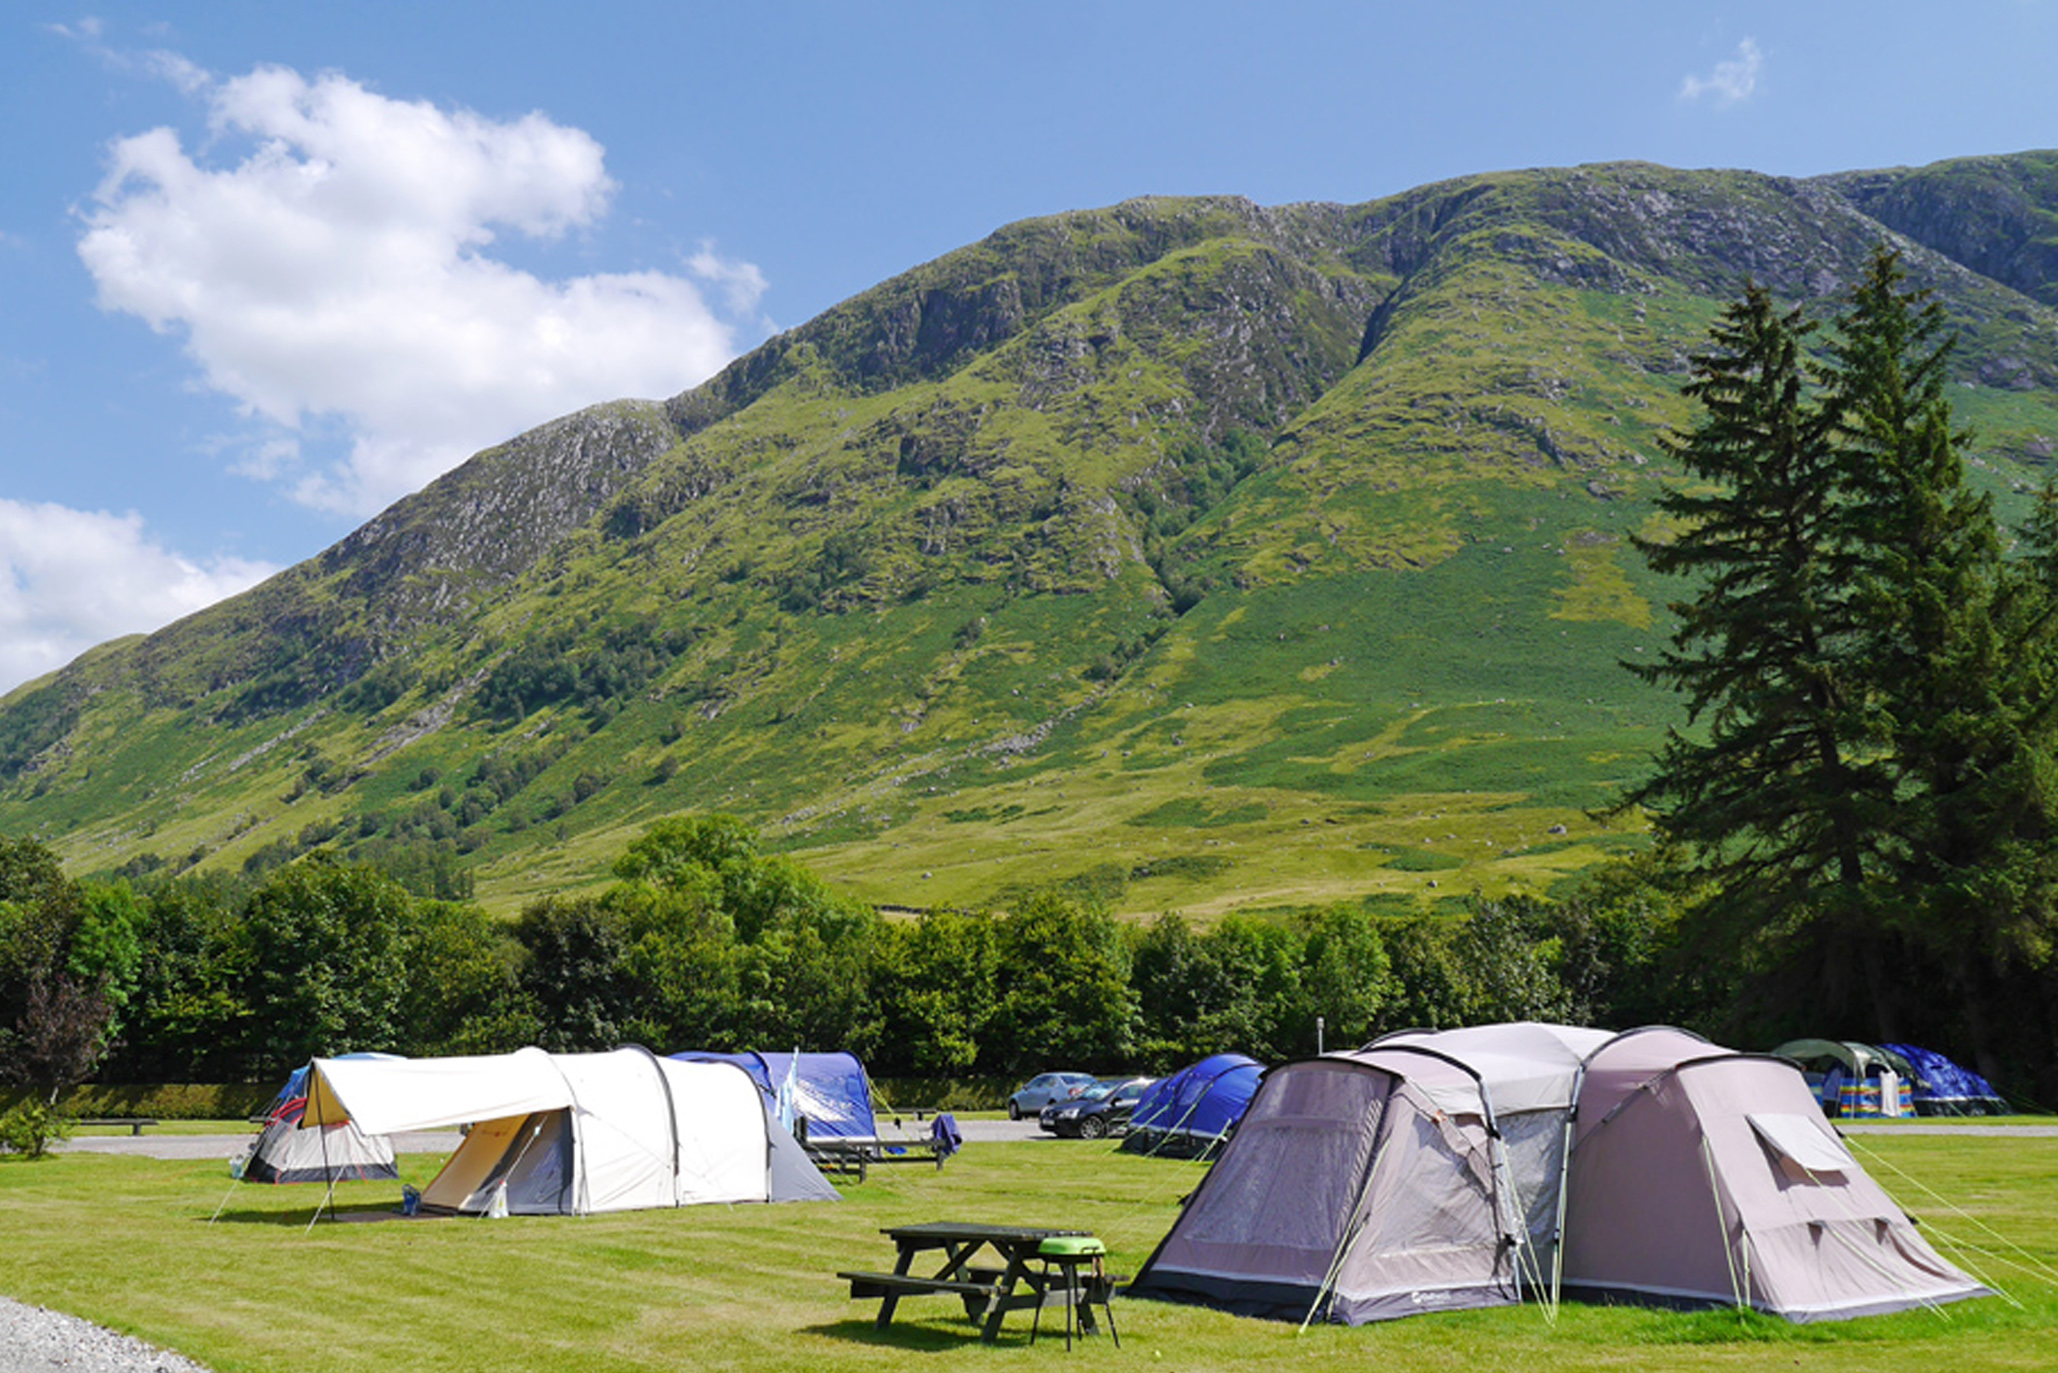 Image source:  Glen Nevis   http://www.glen-nevis.co.uk/tents/